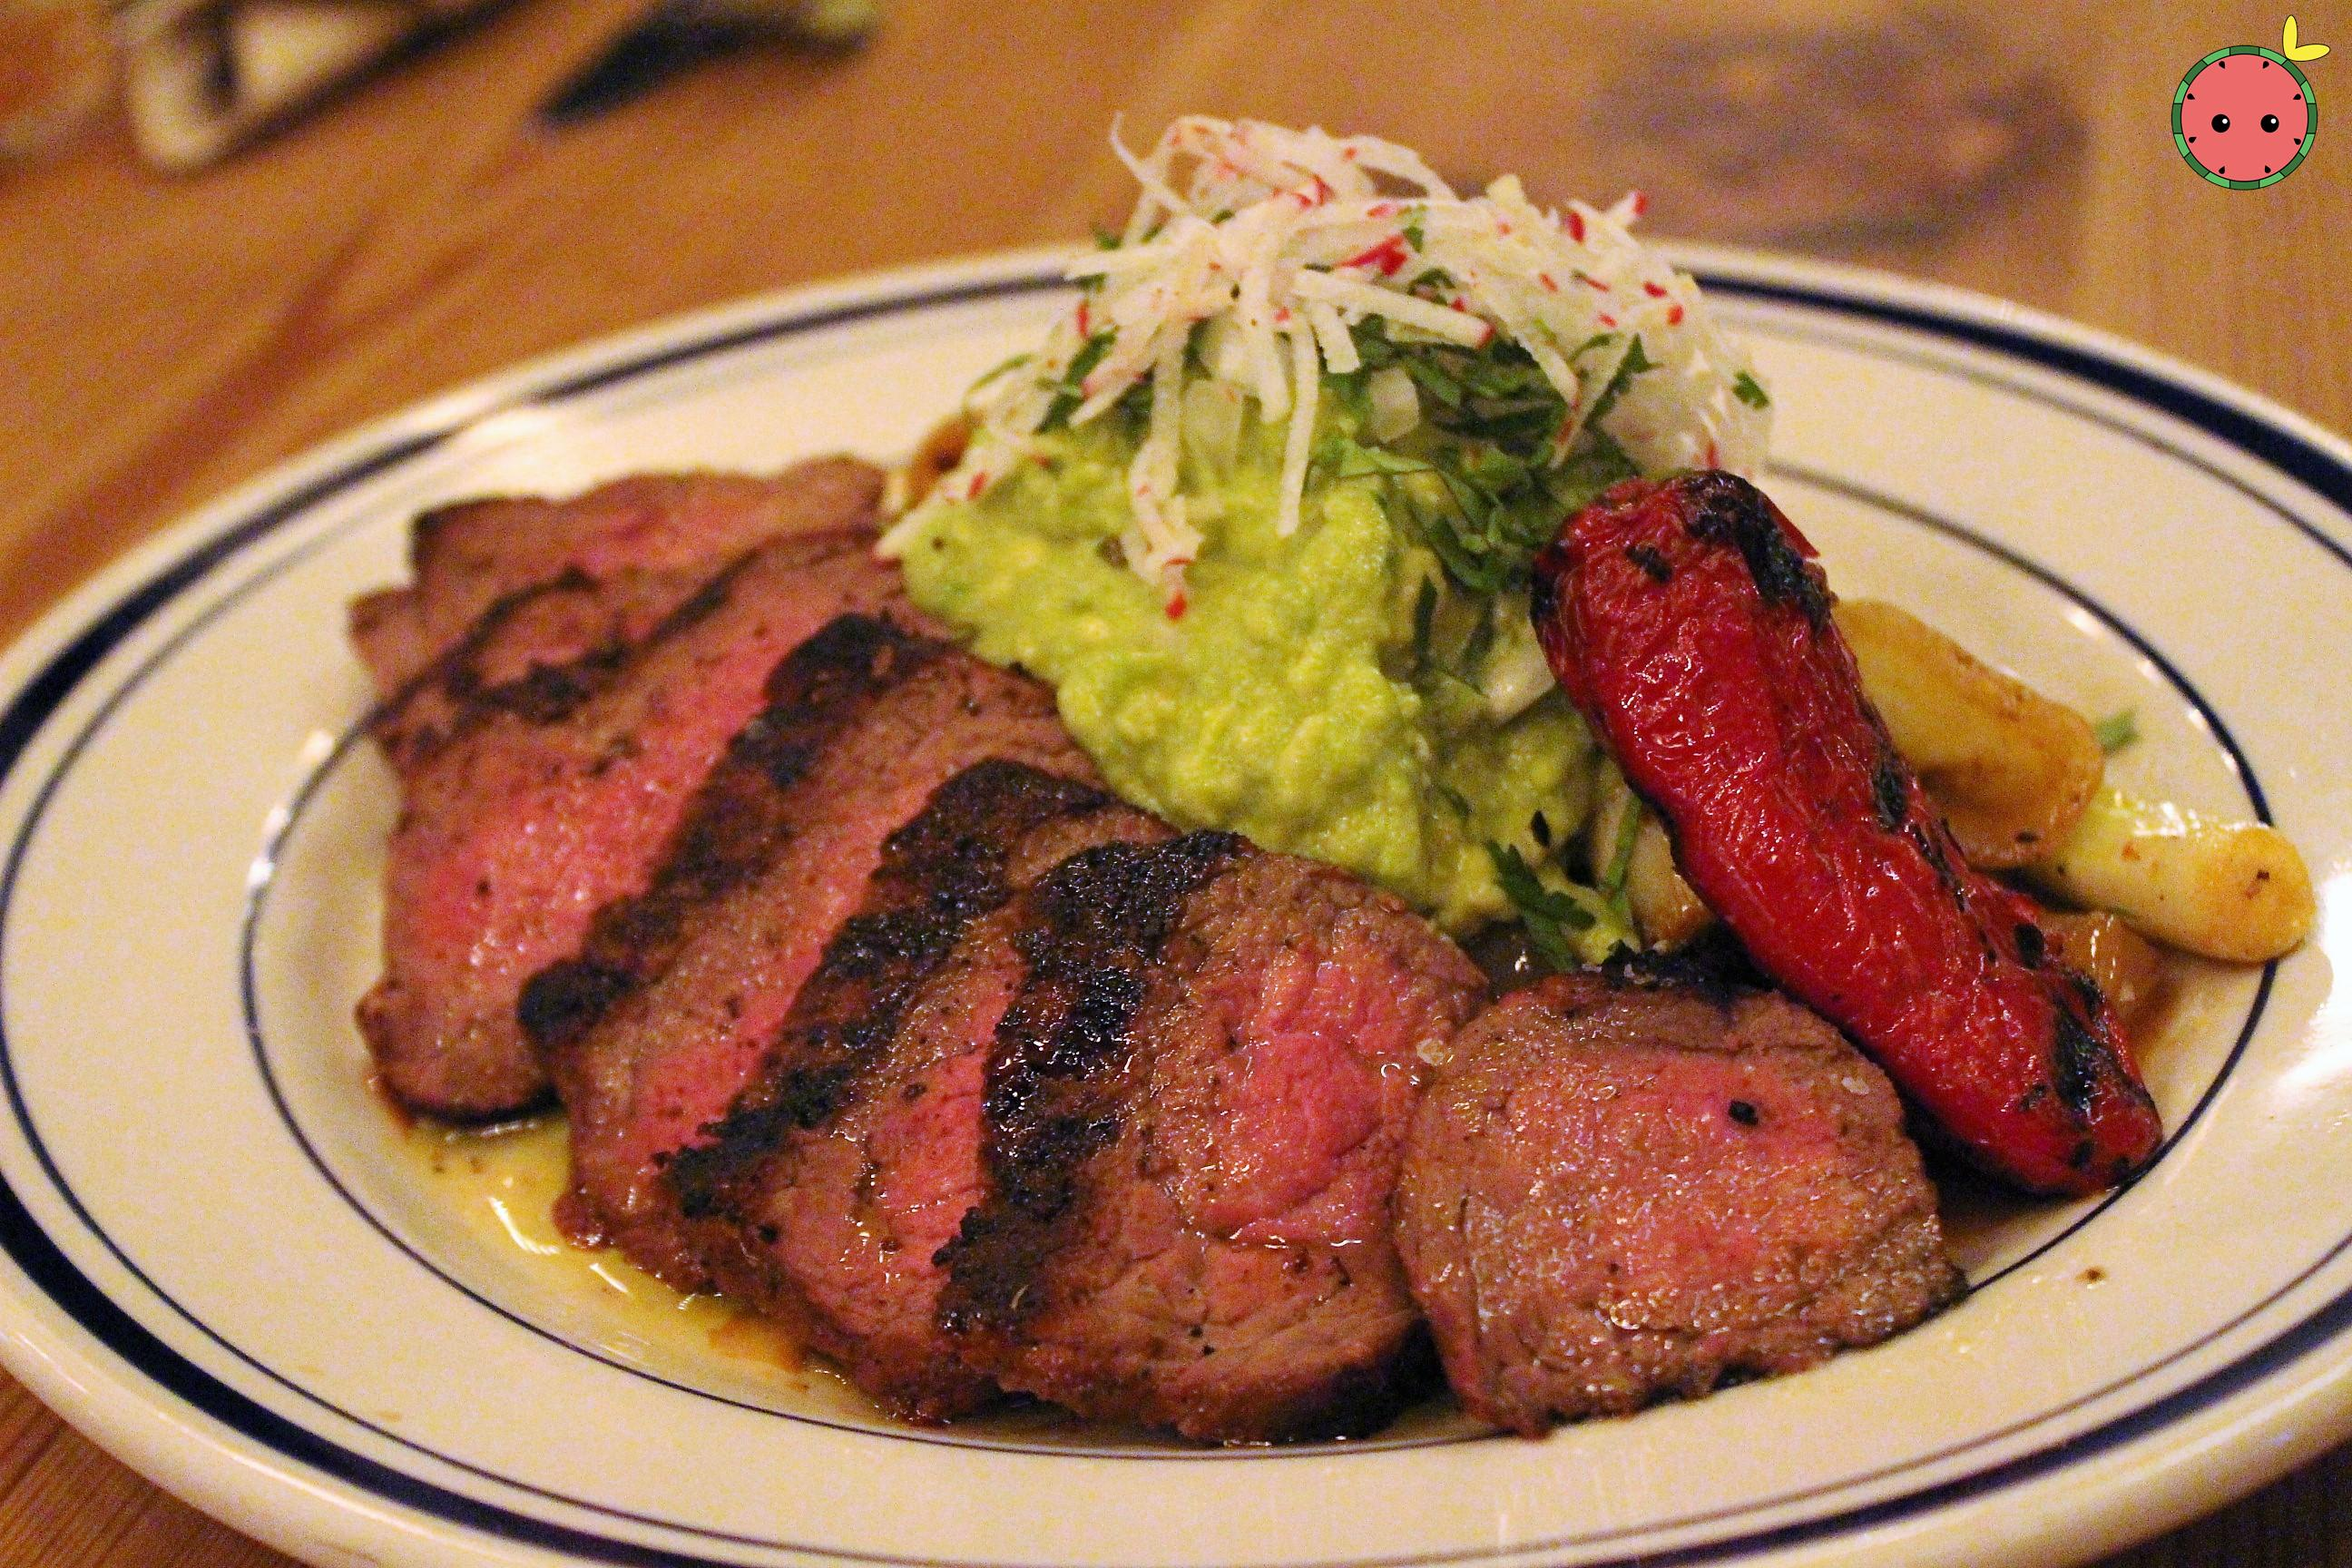 Carne Asada - Grilled marinaed wagyu sirloin steak, stewed chipotle onions, chiles toreados, guacamo